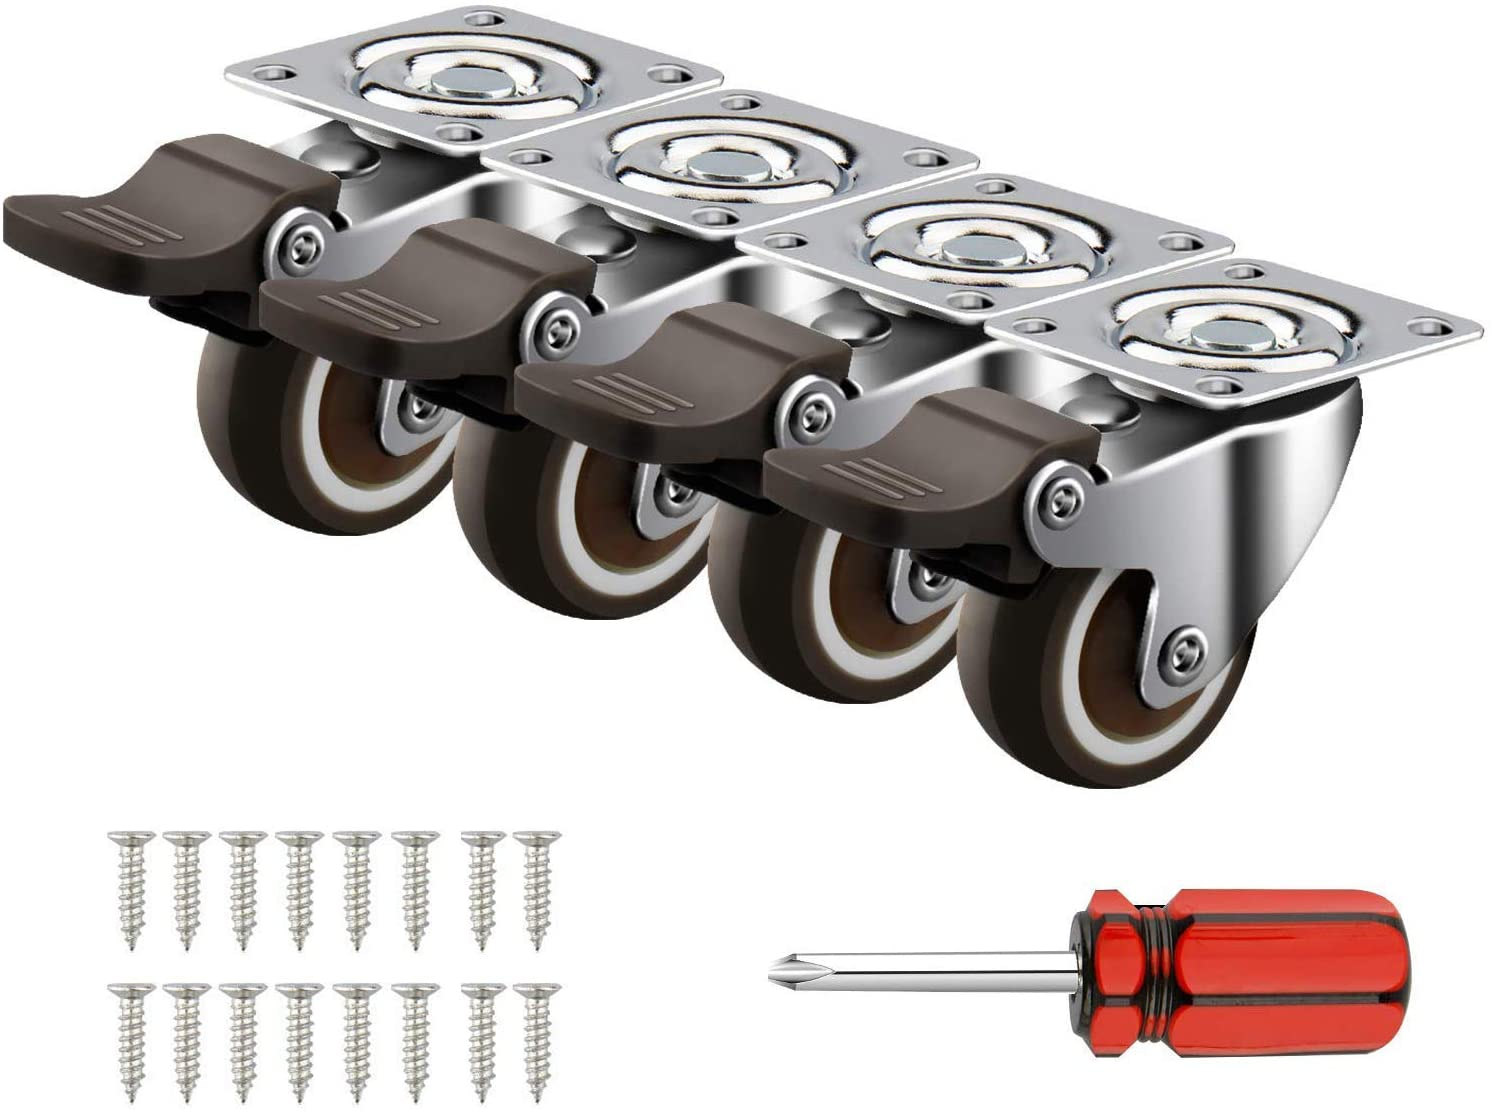 Max Load Capacity up to 100kg 40mm Rubber Casters Castor Wheels Swivel Silent Nylon 1.5 inch for Furniture Trolley Bed Sofa Table 4 Piece Set Heavy Duty